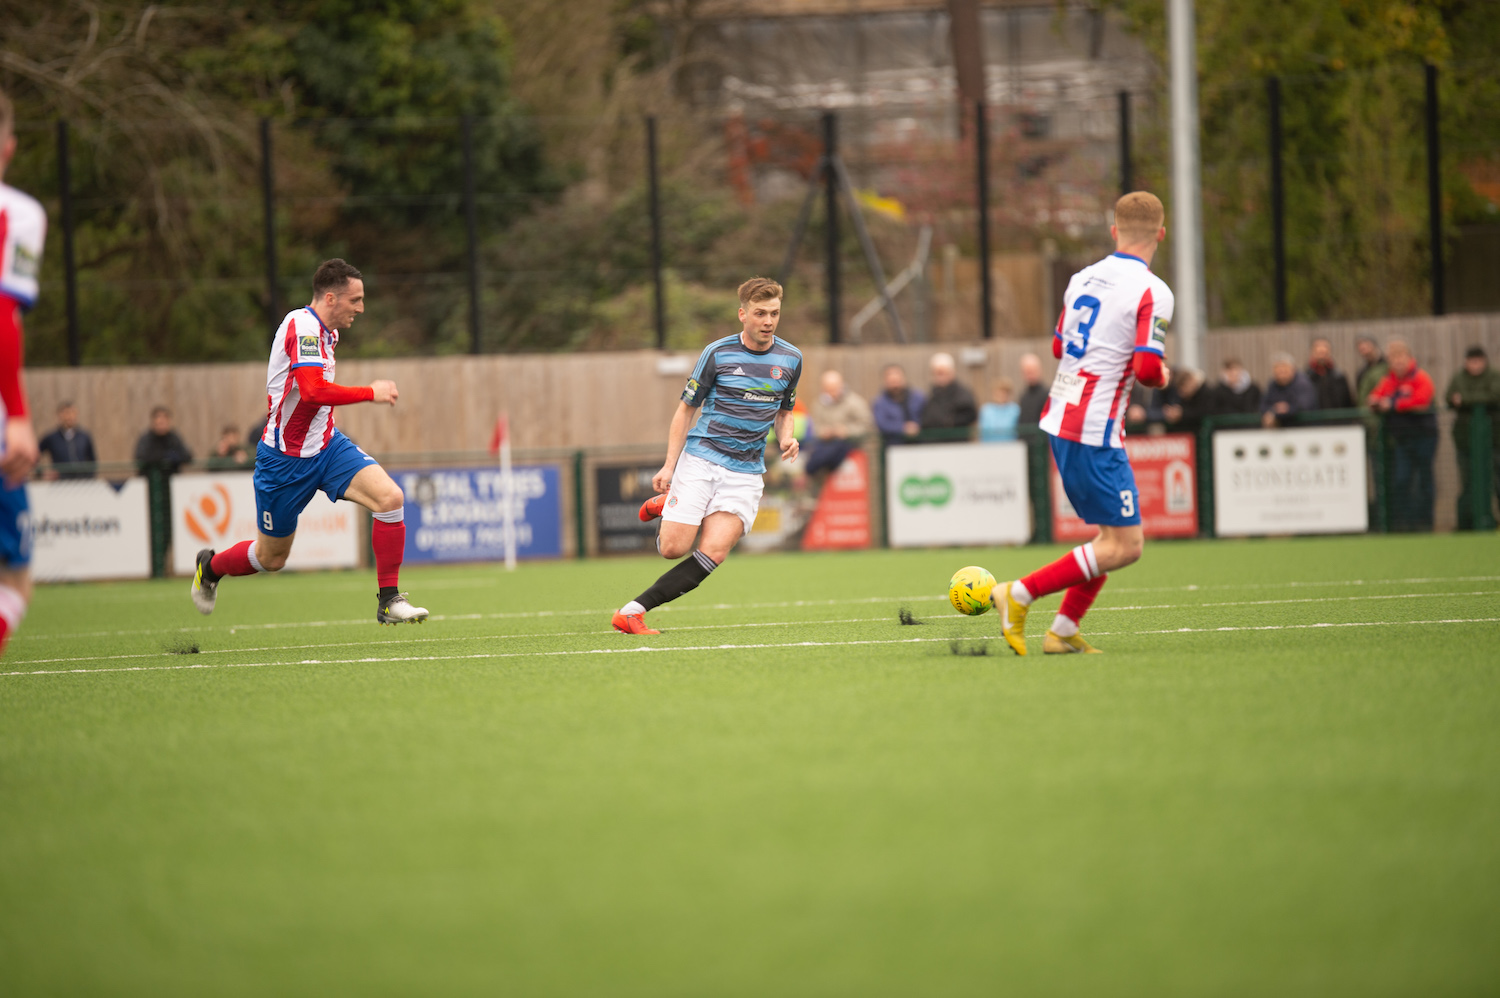 Read the full article - Wanderers Show Worthing The Way